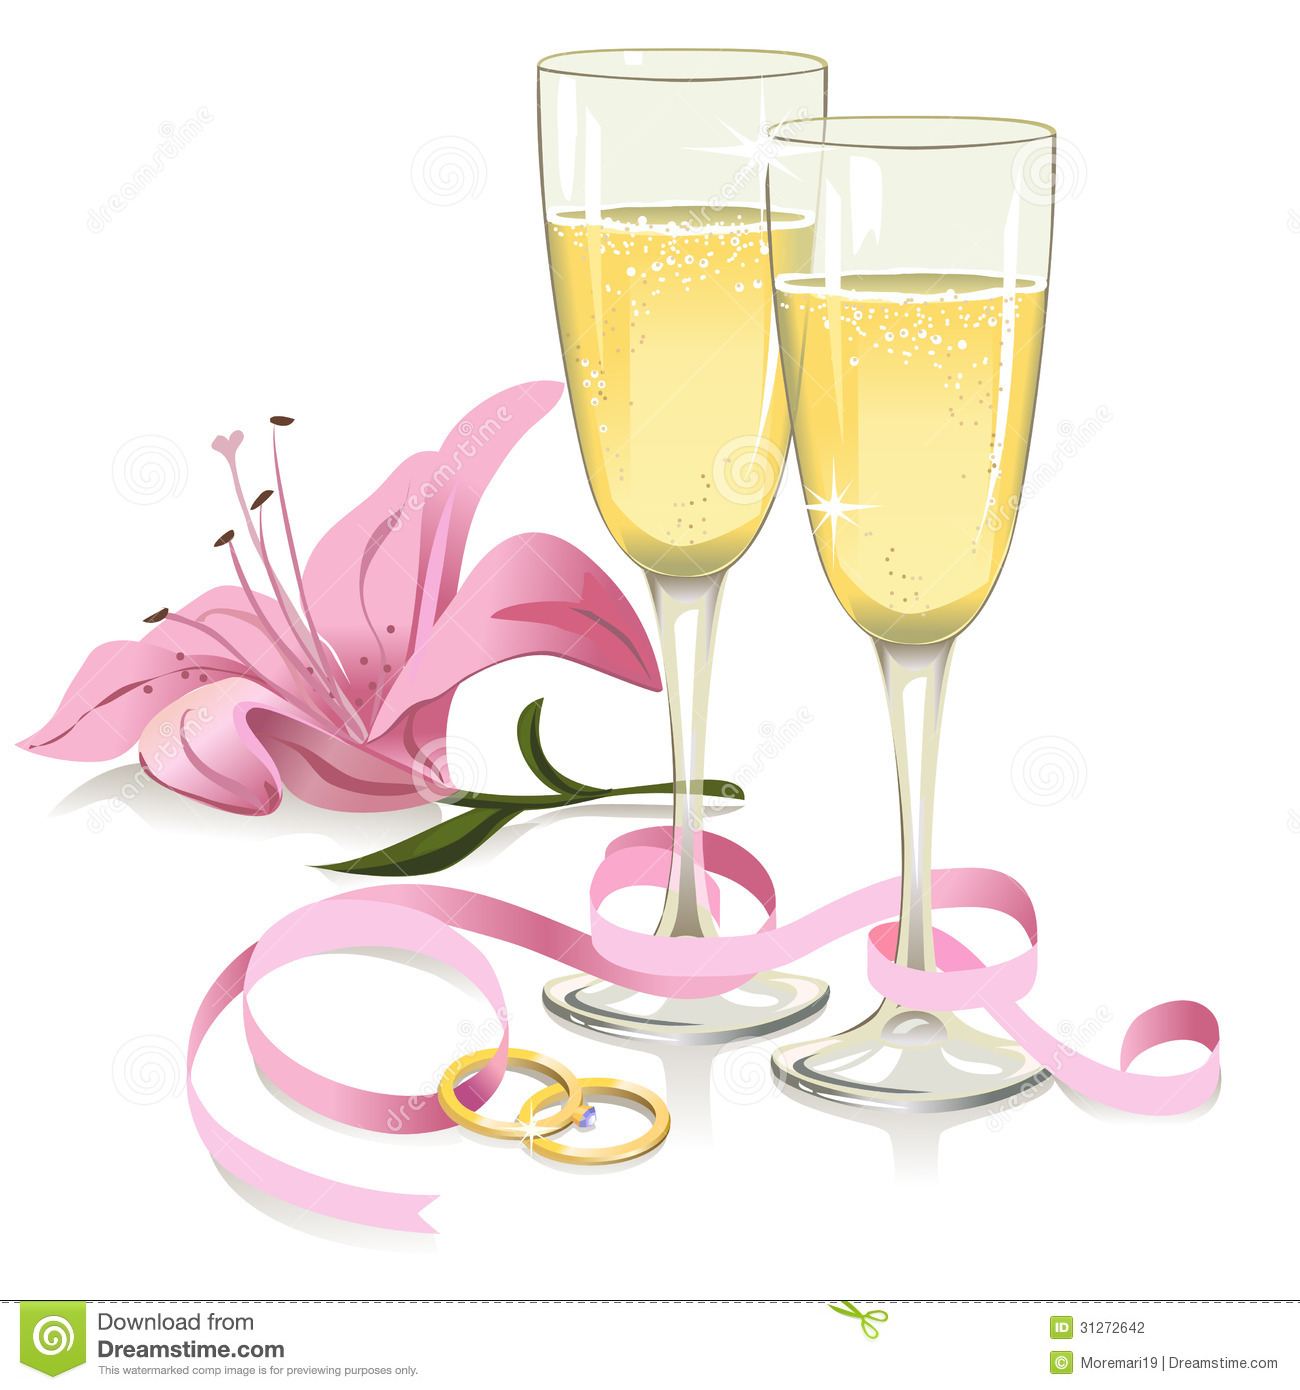 Wedding Glasses With Rings, Ribbon And Lily Stock Vector ...